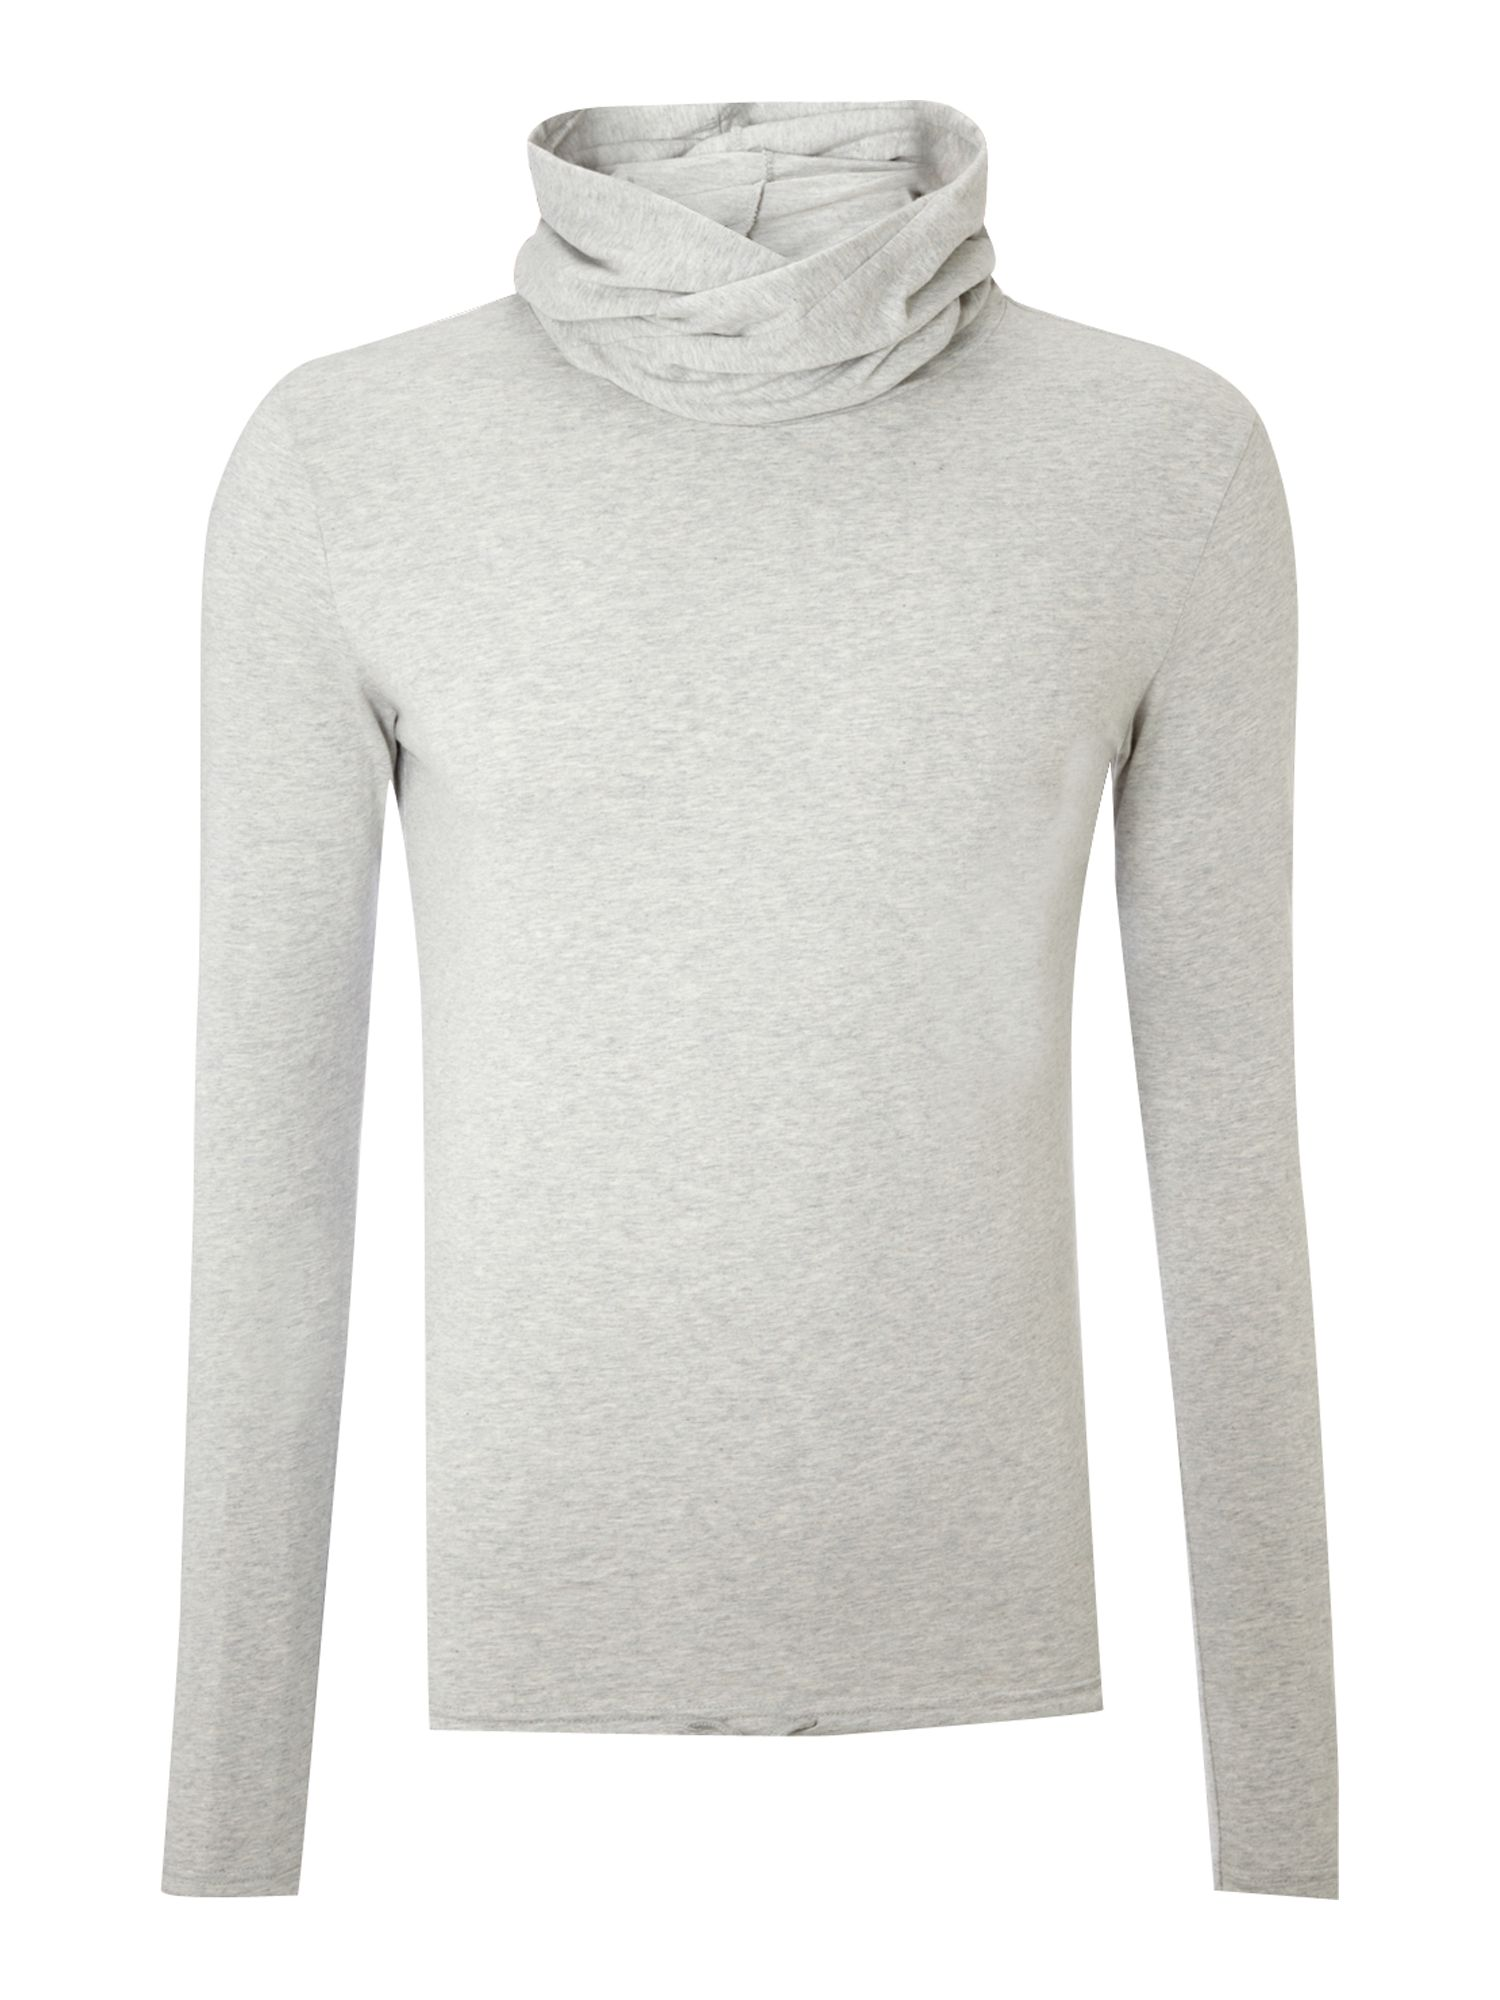 Gio Goi Mens Gio Goi Long sleeved hooded t-shirt, product image